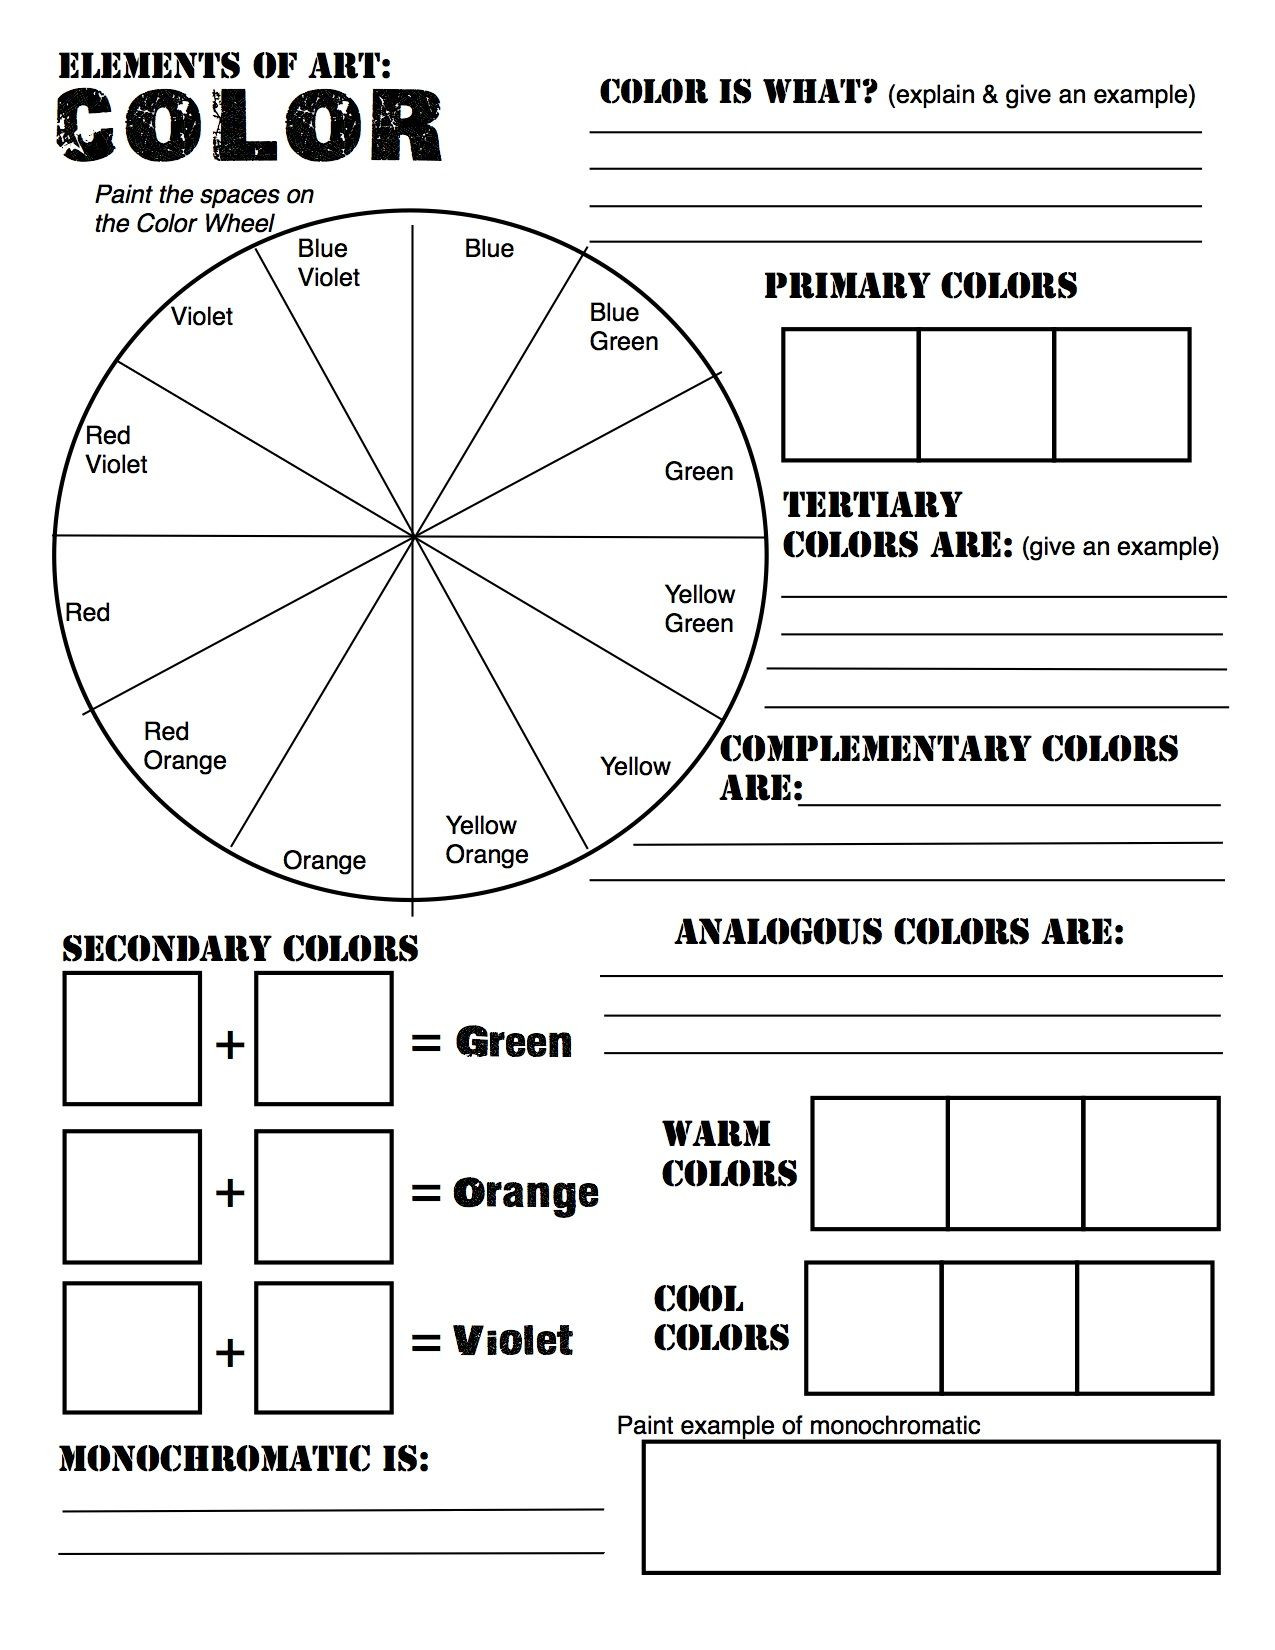 Color Wheel Worksheets Printable M5069cada706cec44f357fc8c Ef3 1 275—1 650 Pixels